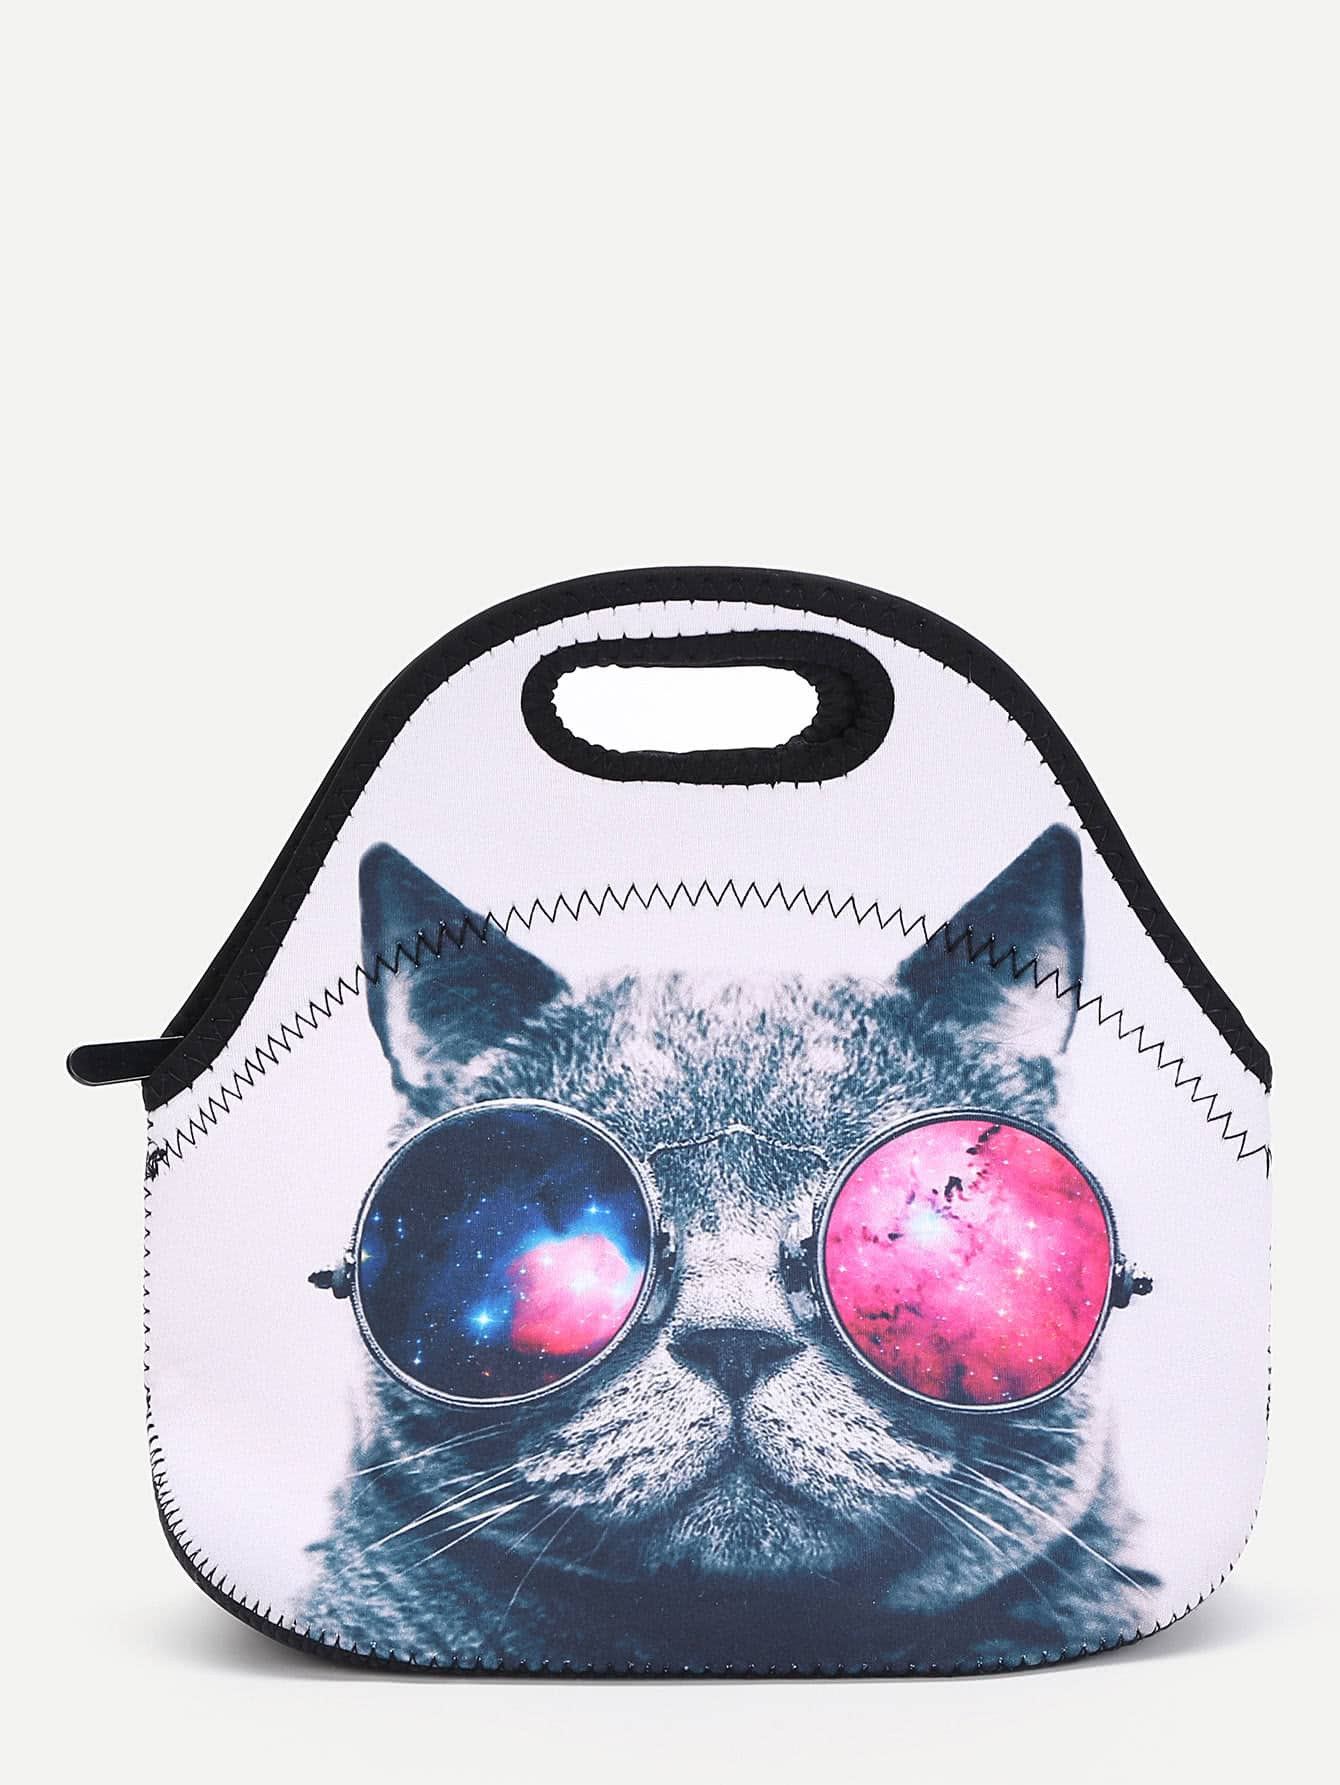 Cat Print Lunch Bag aosbos fashion portable insulated canvas lunch bag thermal food picnic lunch bags for women kids men cooler lunch box bag tote